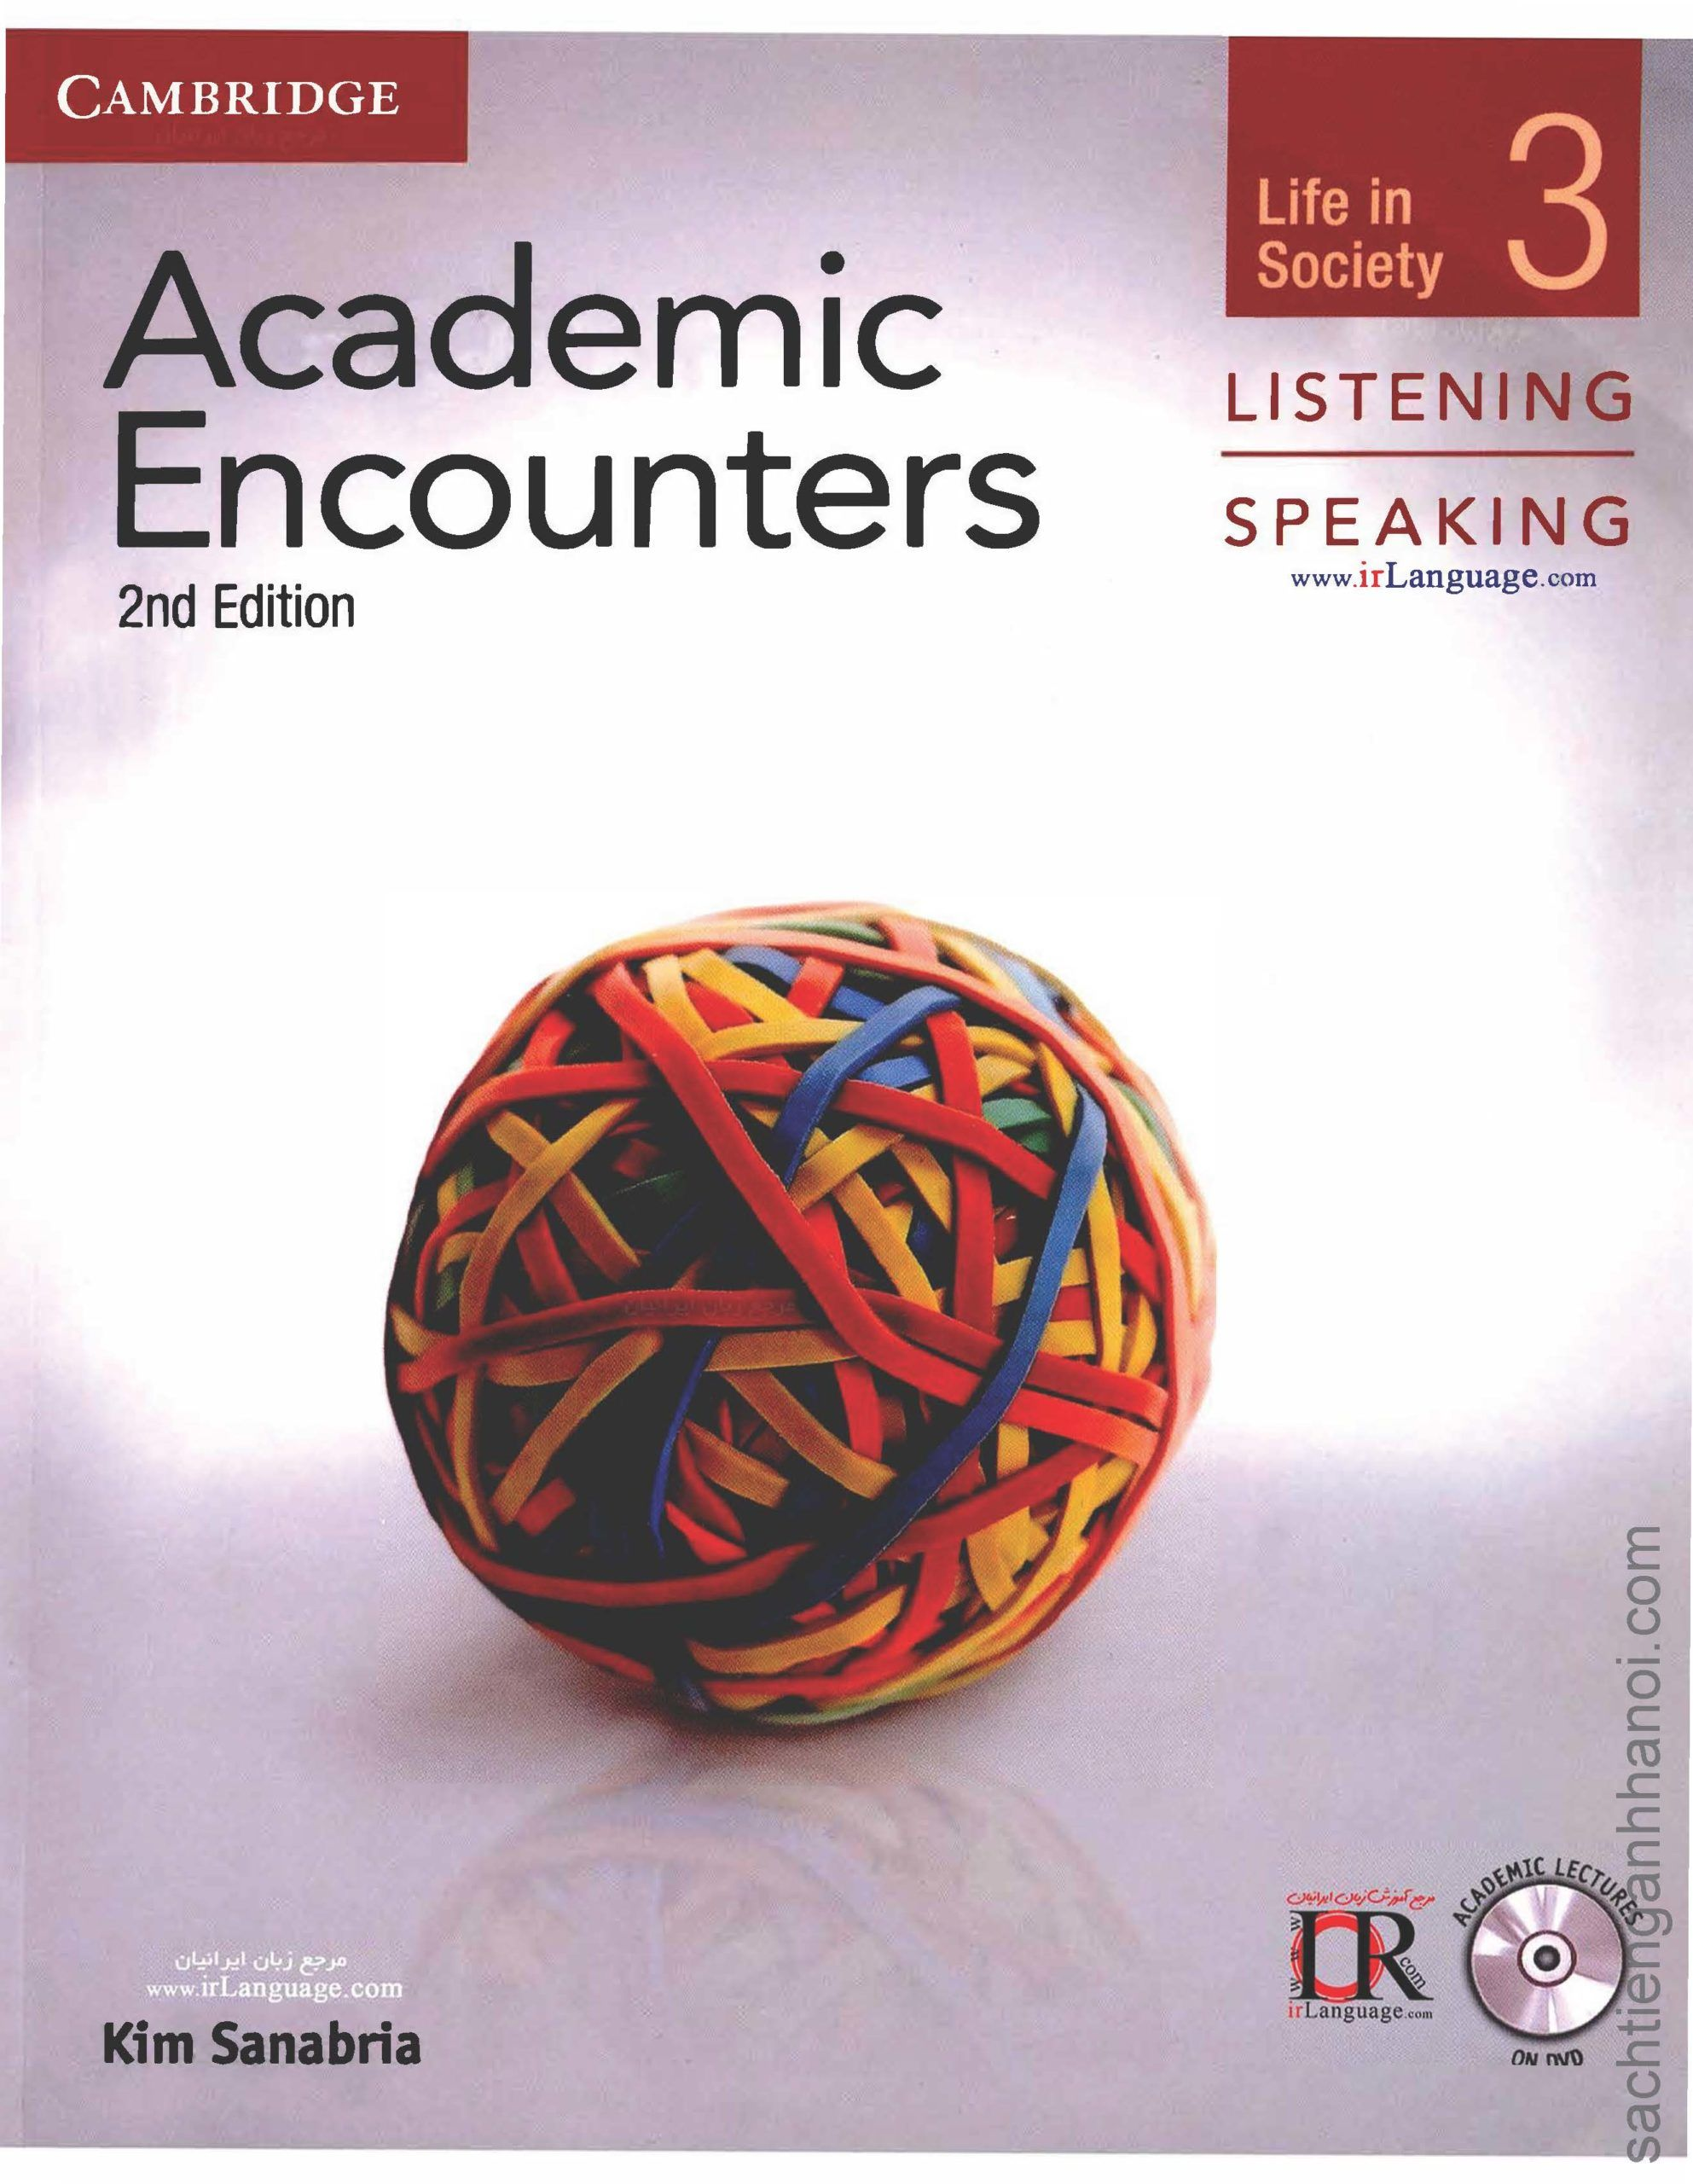 Audio Academic Encounters Life In Society Level 3 Student S Book Listening And Speaking 2nd Edition Sach Tiếng Anh Ha Nội Tiếng Anh